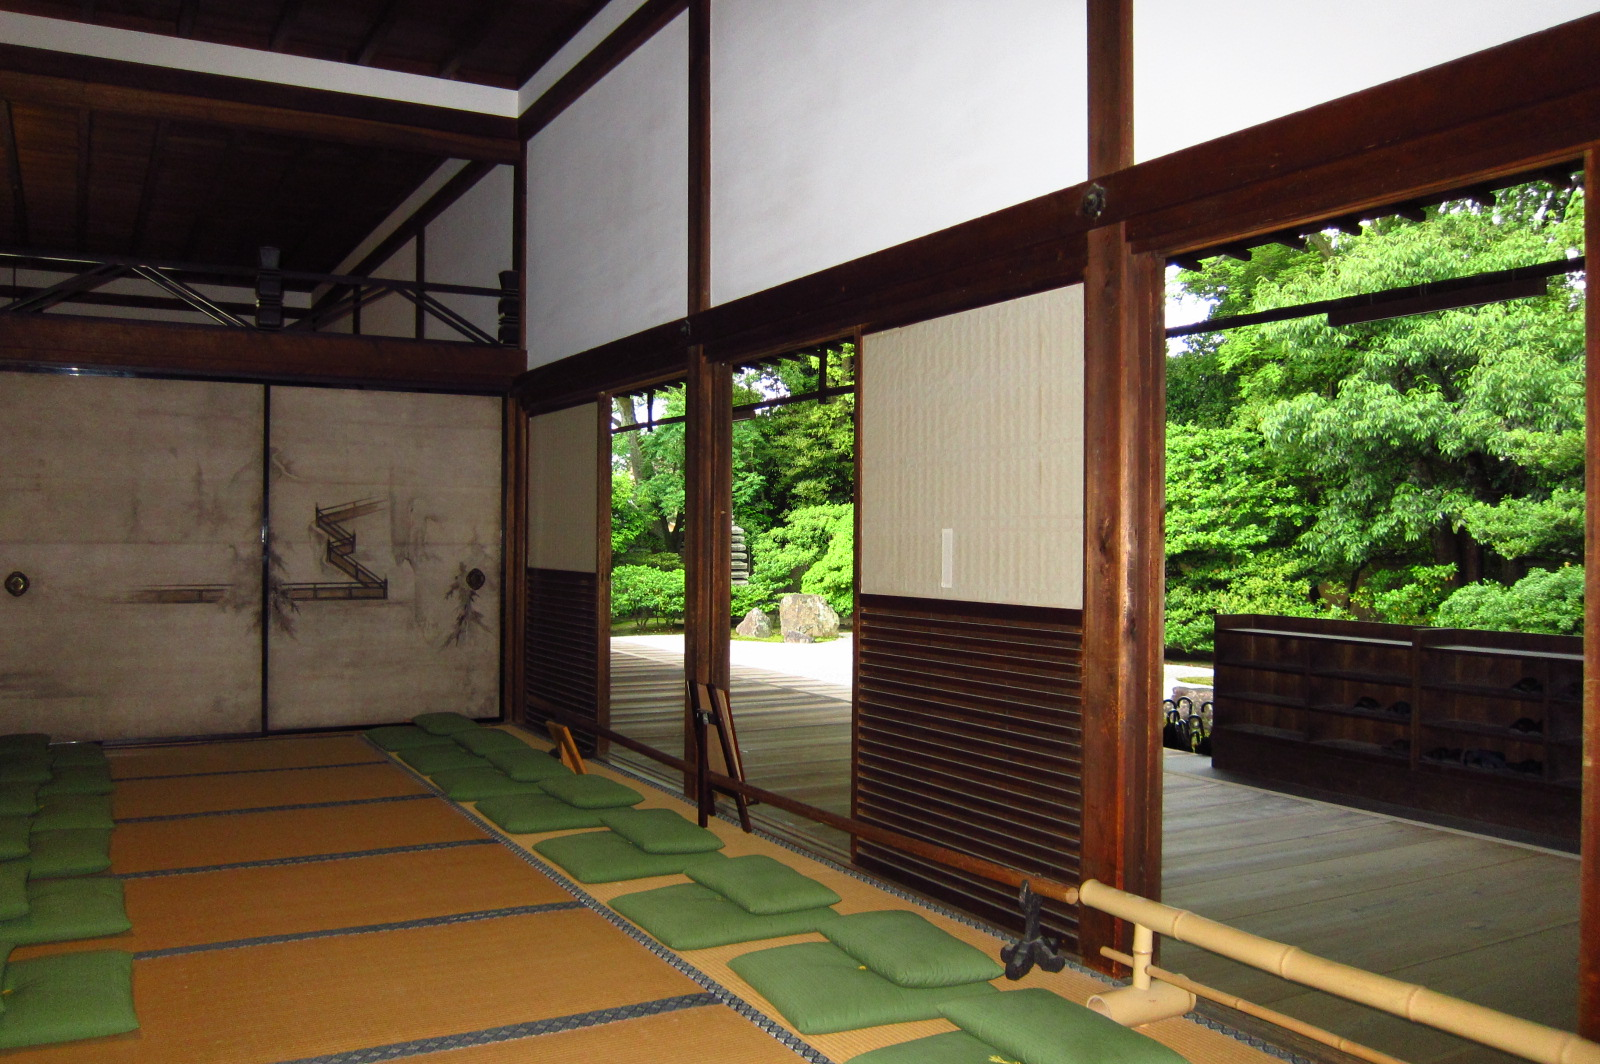 Zen Meditation Room Round Of The Seasons In Japan Zen Meditation Room And Dry Garden